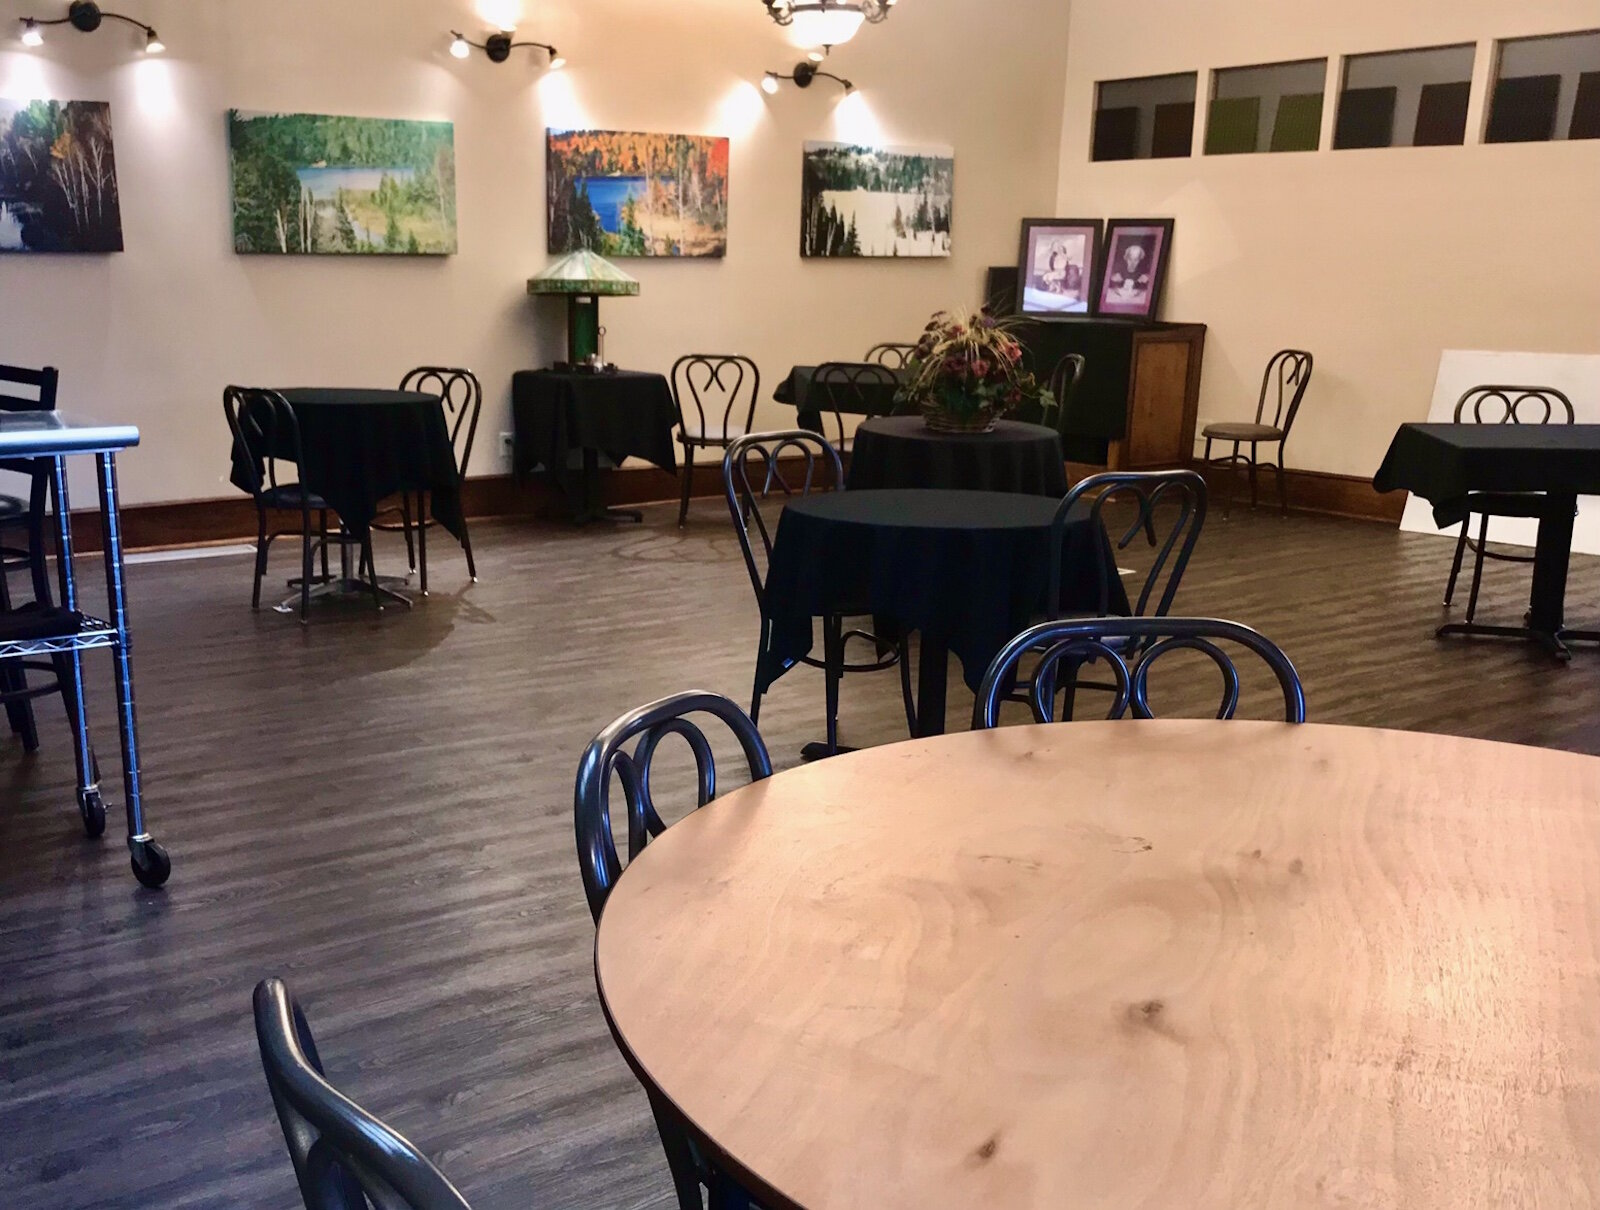 What was used as an overflow dining room during busy nights and as a private events area before the COVID pandemic, has enabled Comensoli's to do proper social distancing as more indoor dining has been allowed.